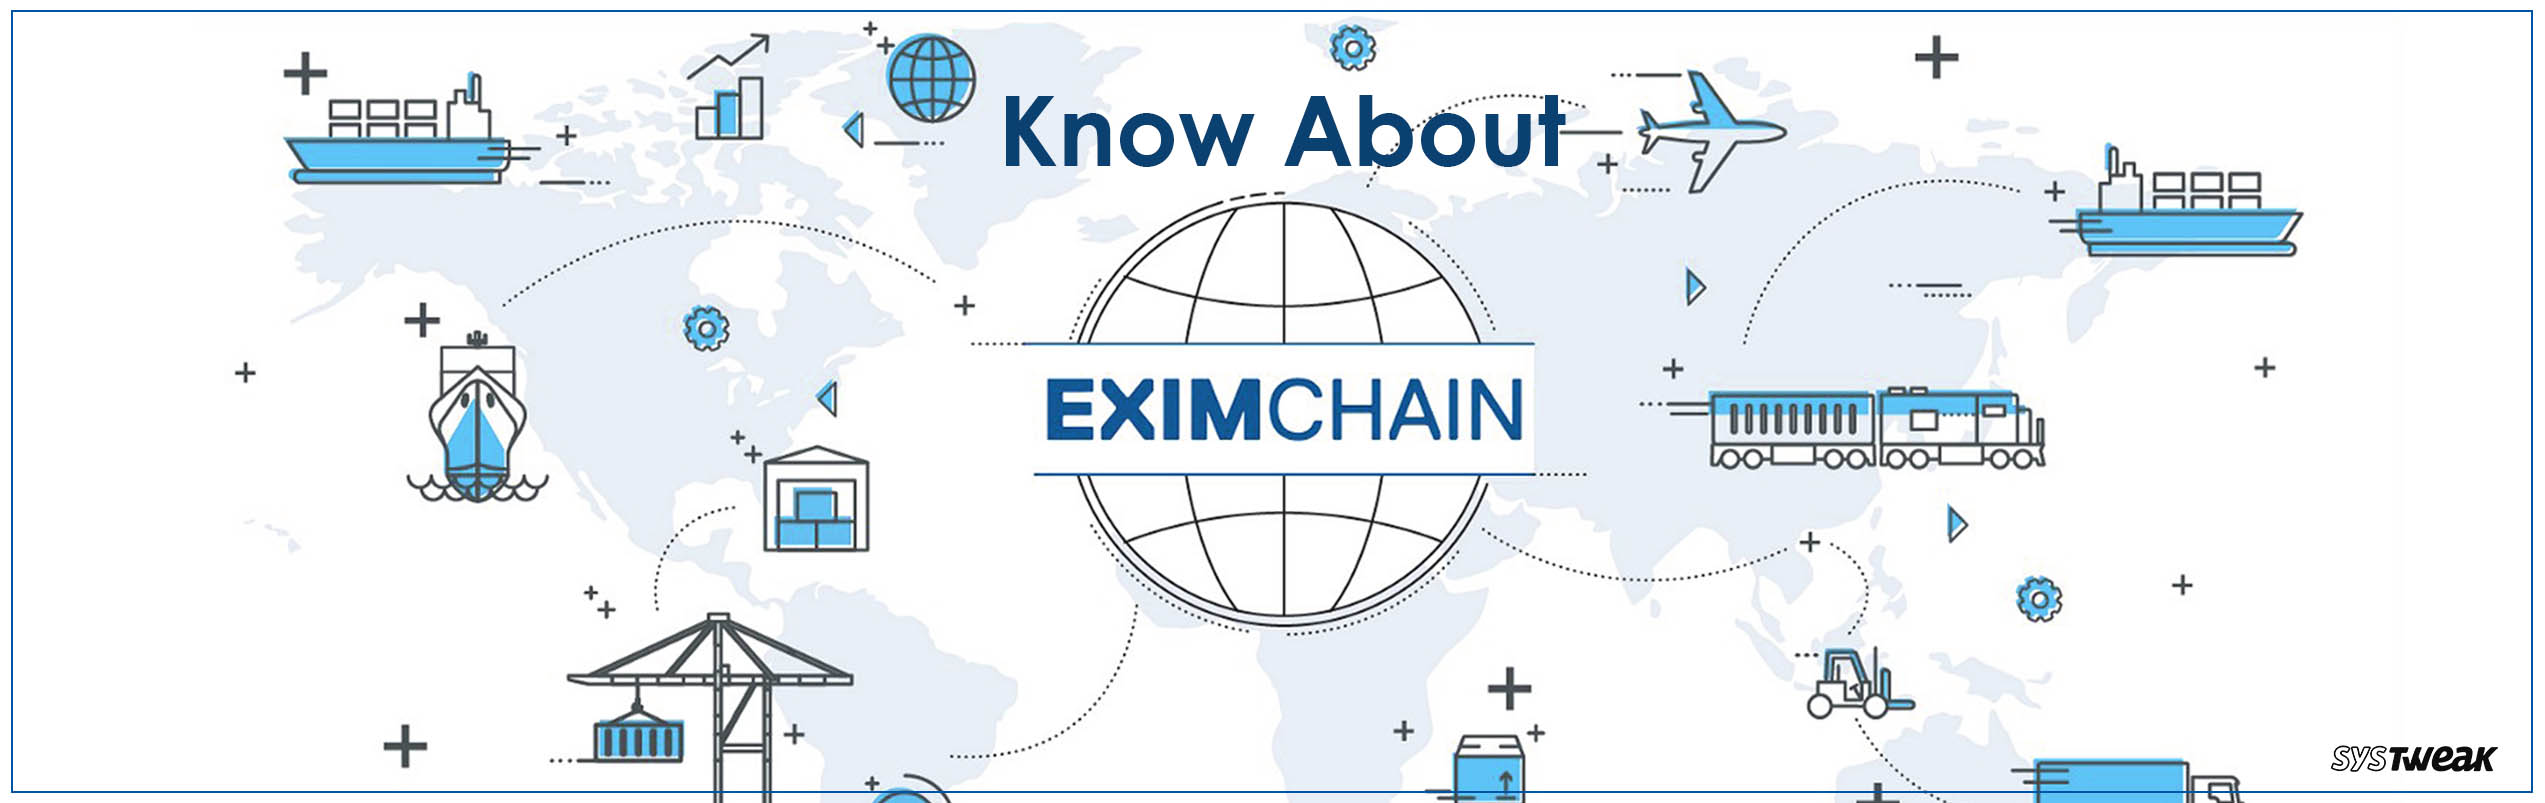 Eximchain: Blockchain For Smarter Supply Chain